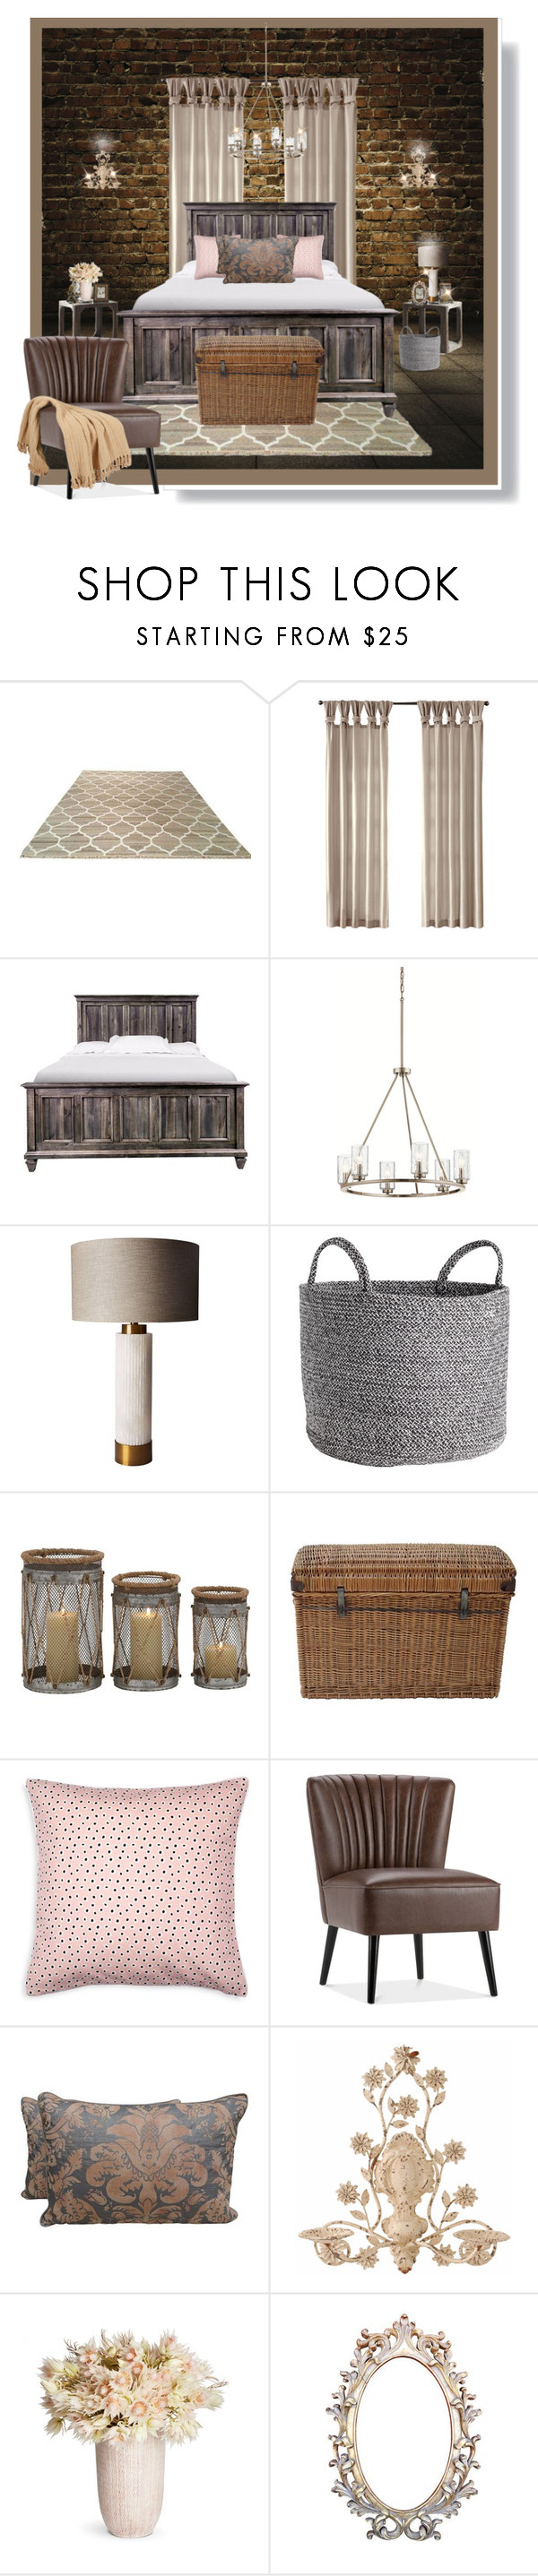 """""""Dark Walls and Bricks"""" by beleev ❤ liked on Polyvore featuring interior, interiors, interior design, home, home decor, interior decorating, WALL, Riverside Furniture, Kichler and Madura"""